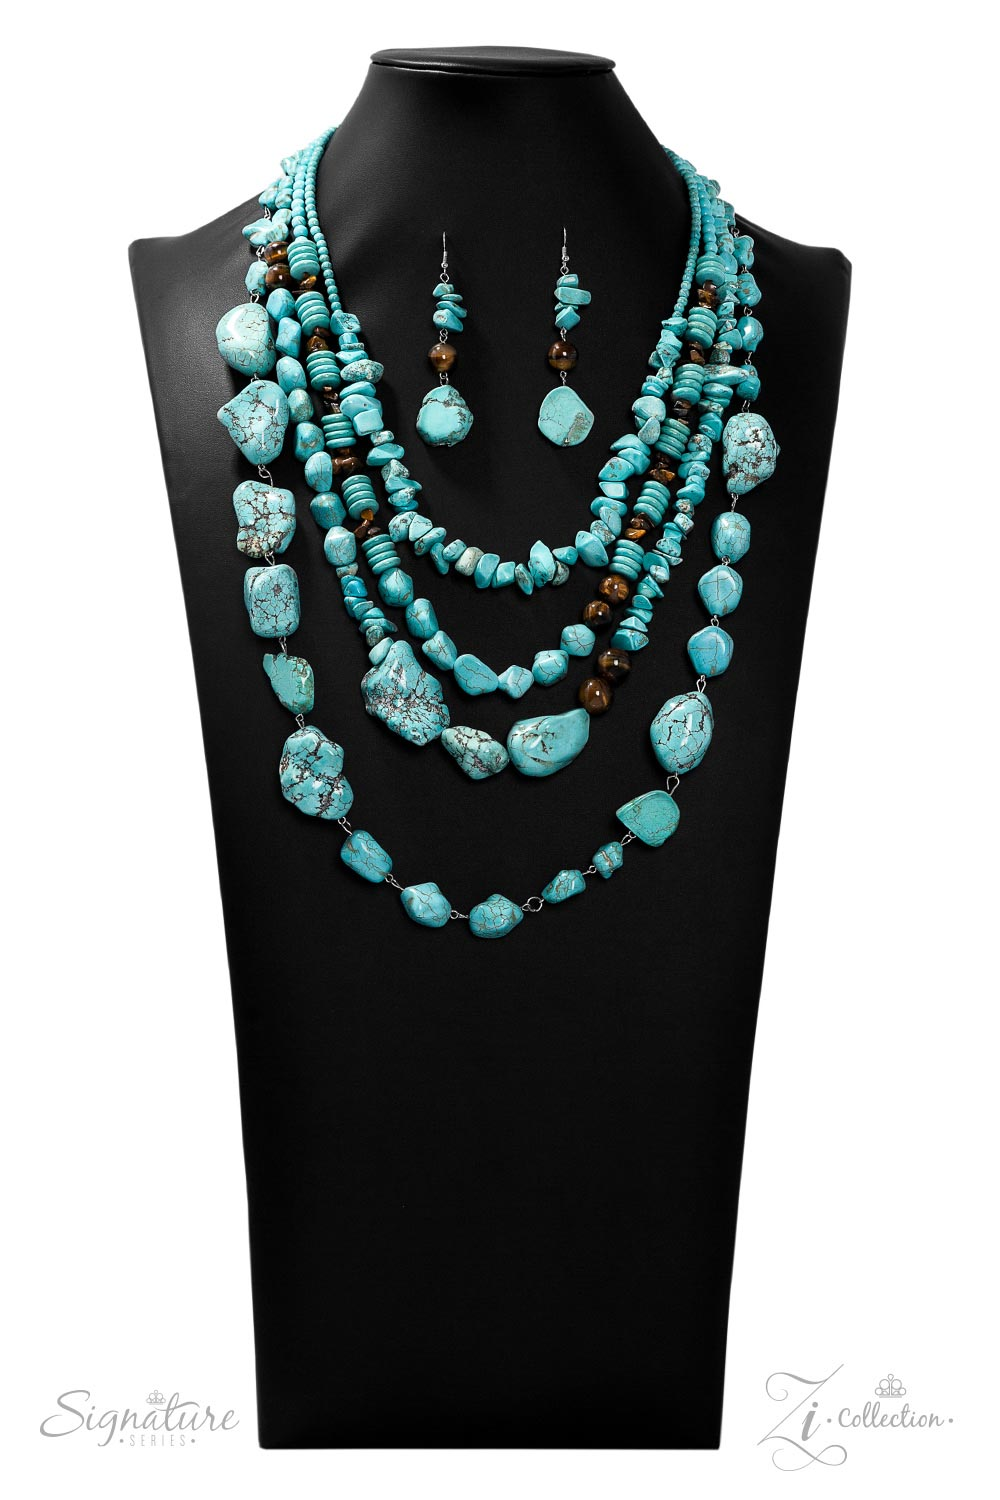 The Monica - Layers of Turquoise Stones Necklace - 2019 Zi Collection